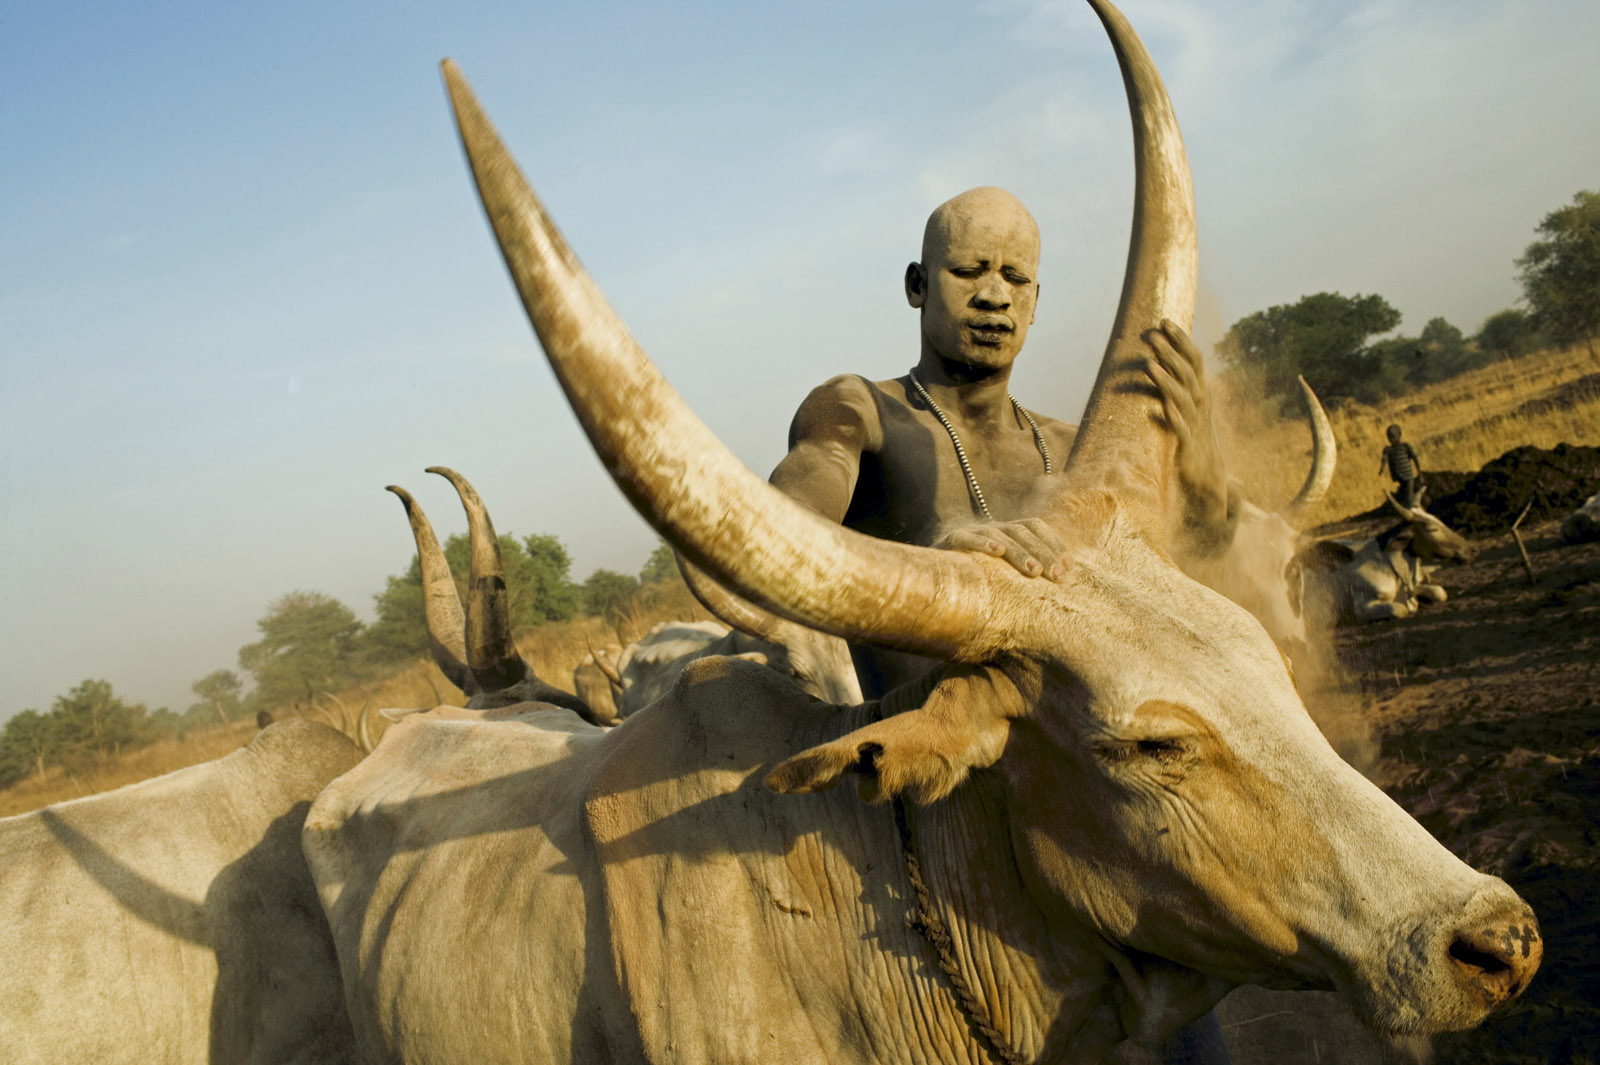 A Mandari Cattle herder rubs one of his cows with ash to protect its skin from the burning sun in Southern Sudan